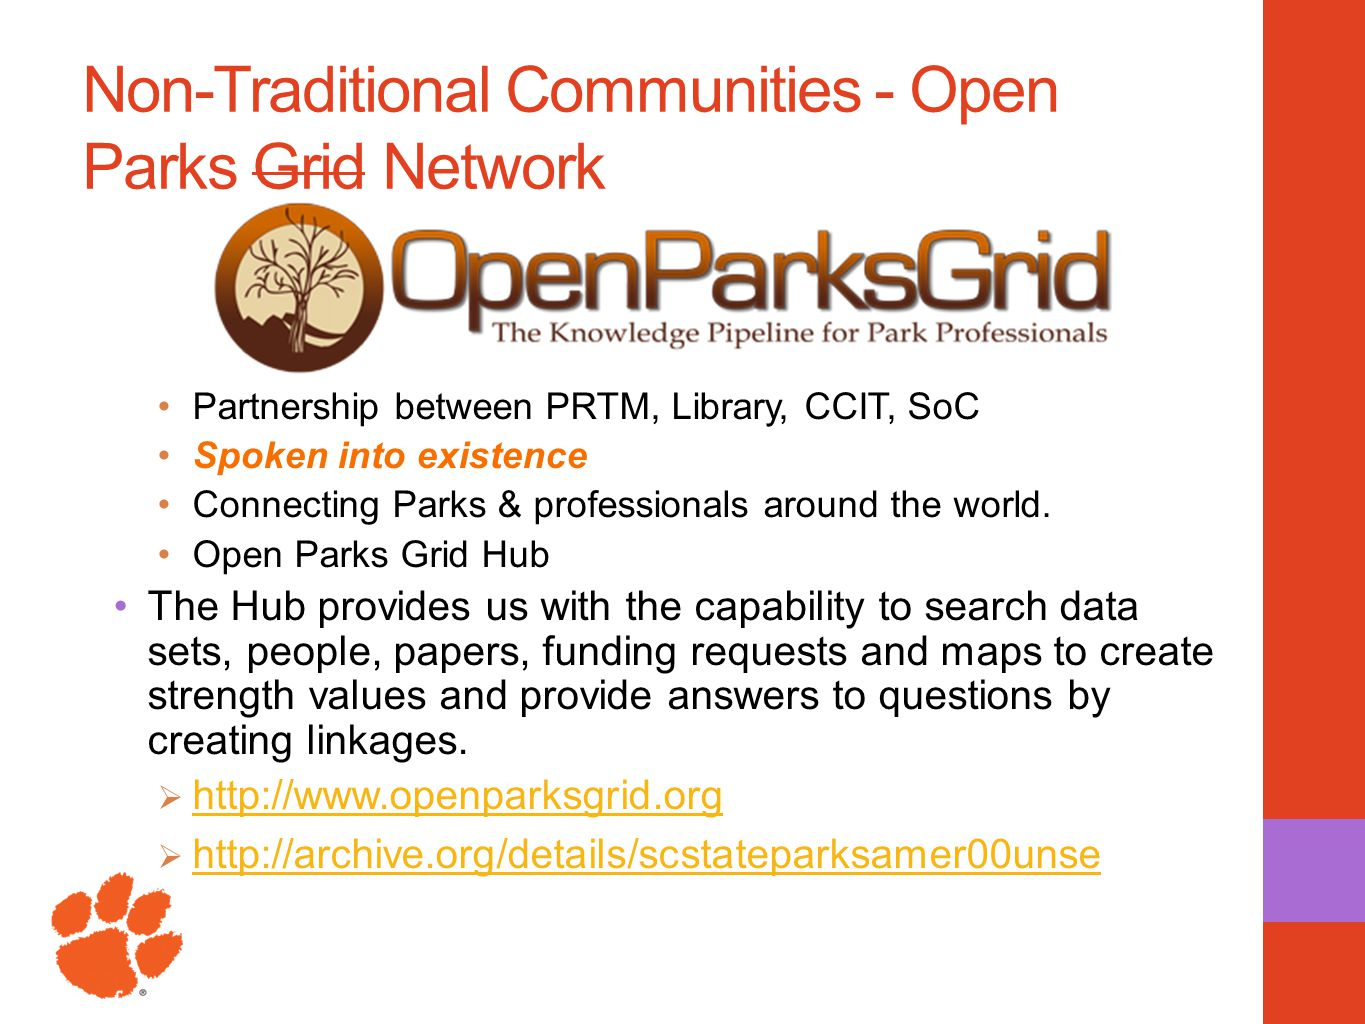 Non-Traditional Communities - Open Parks Grid Network Partnership between PRTM, Library, CCIT, SoC Spoken into existence Connecting Parks & profession